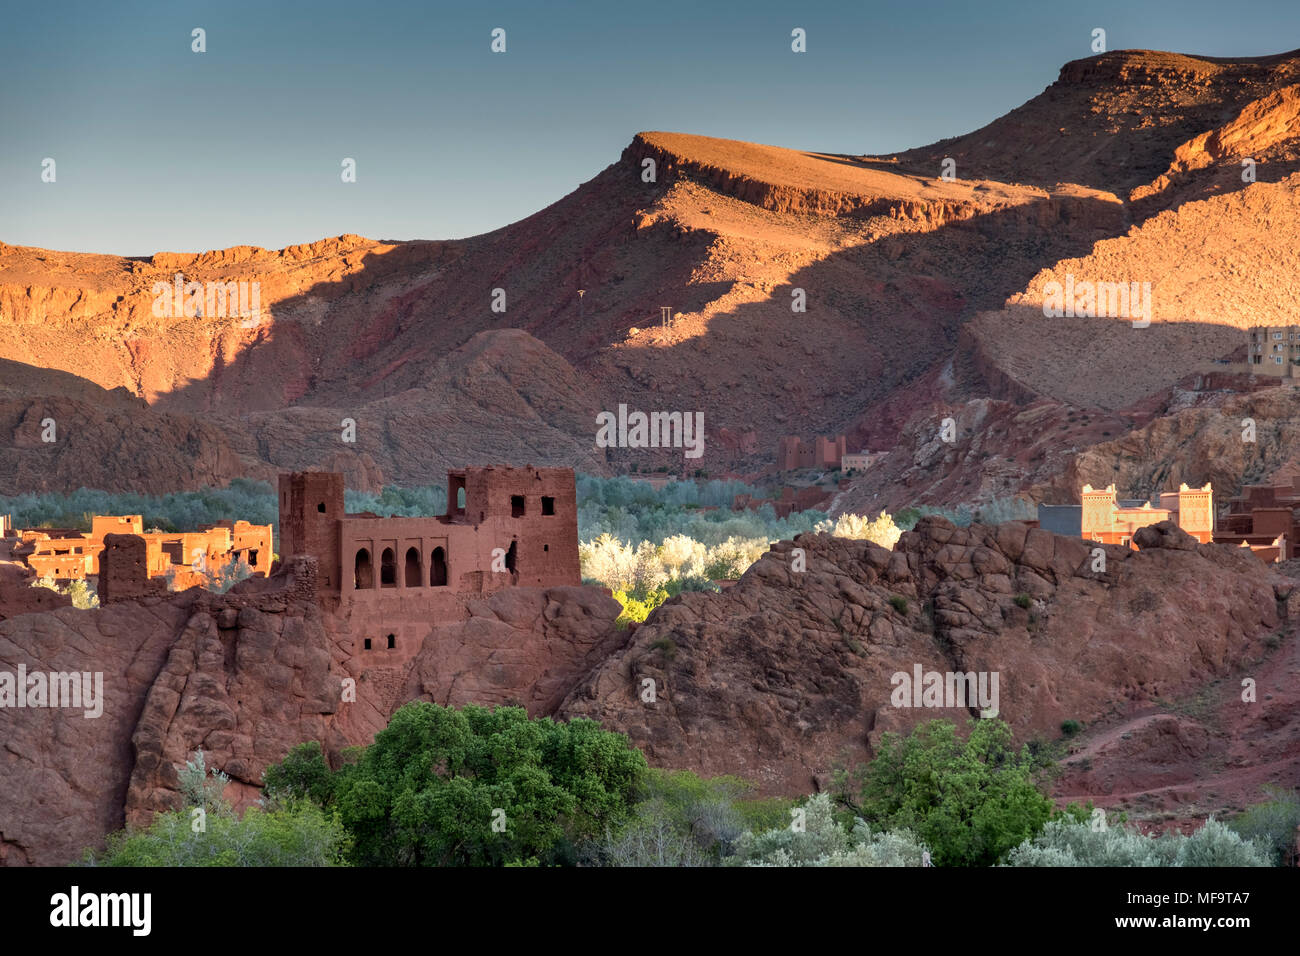 Abandoned Kasbah in the spectacular Dades Valley, Morocco - Stock Image